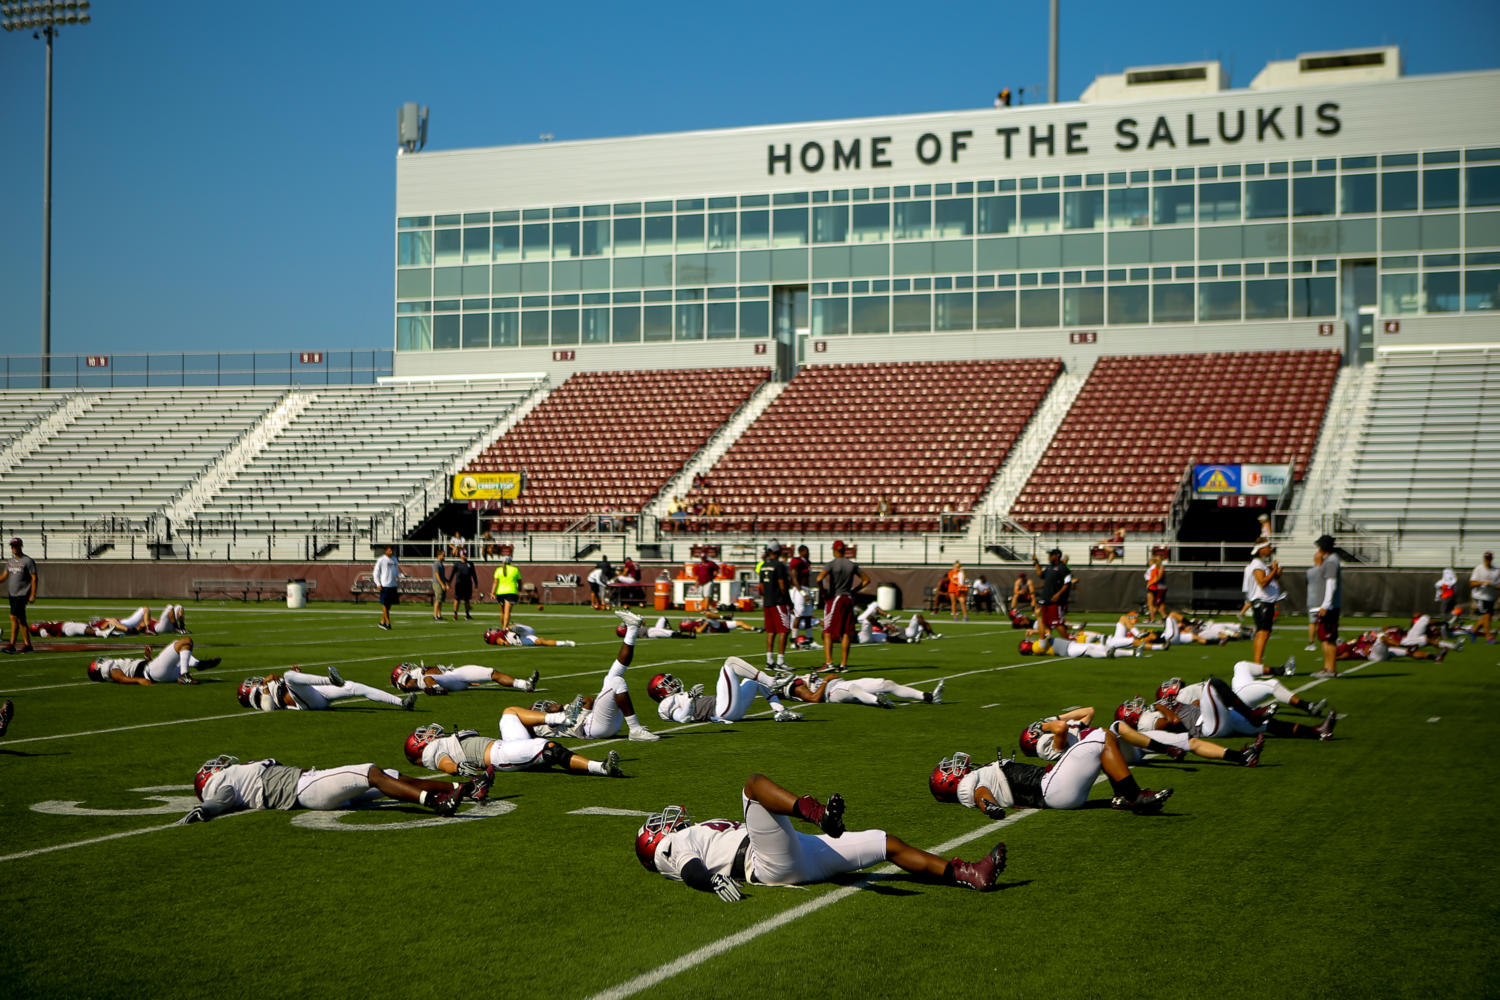 Members+of+the+Saluki+Football+team+stretch+Saturday%2C+Aug.+19%2C+2017+before+the+second+scrimmage+at+Saluki+Stadium.+%28Brian+Mu%C3%B1oz+%7C+%40BrianMMunoz%29